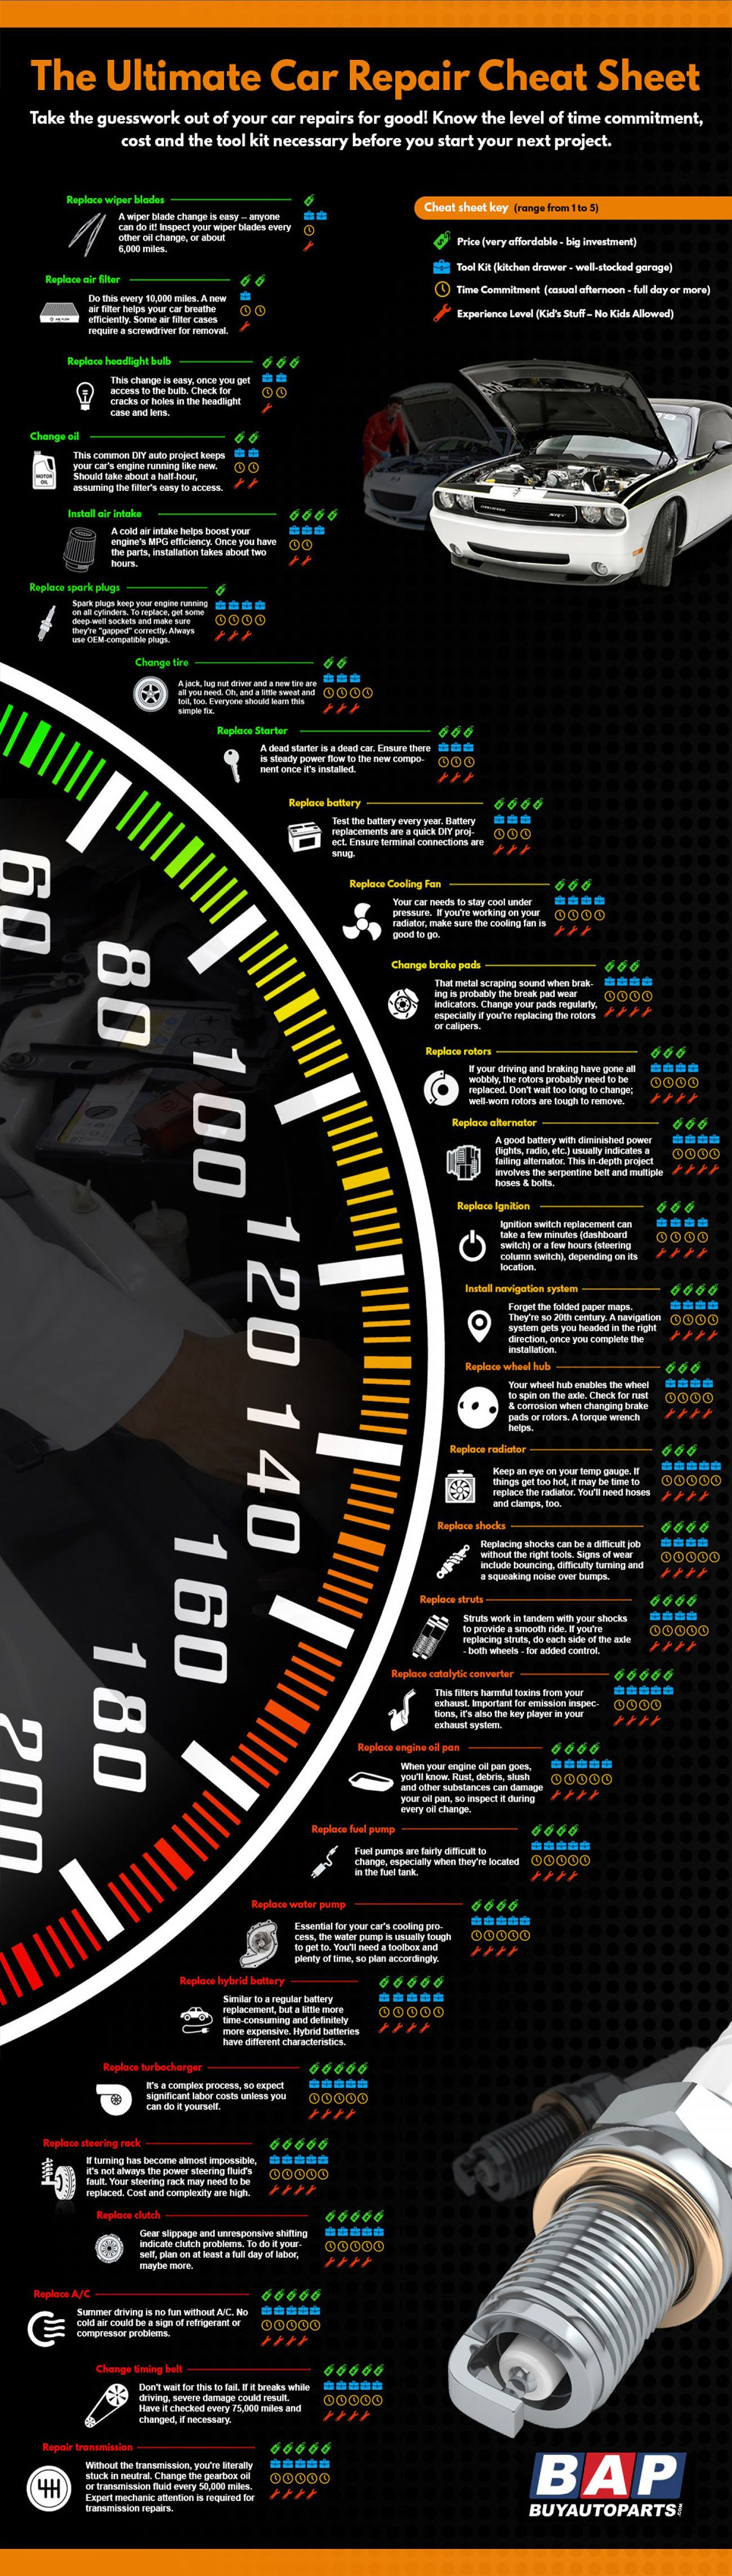 guide to auto replacement parts infographic infographic cars rh pinterest com Repair Guy KitchenAid Dishwasher Repair Guide